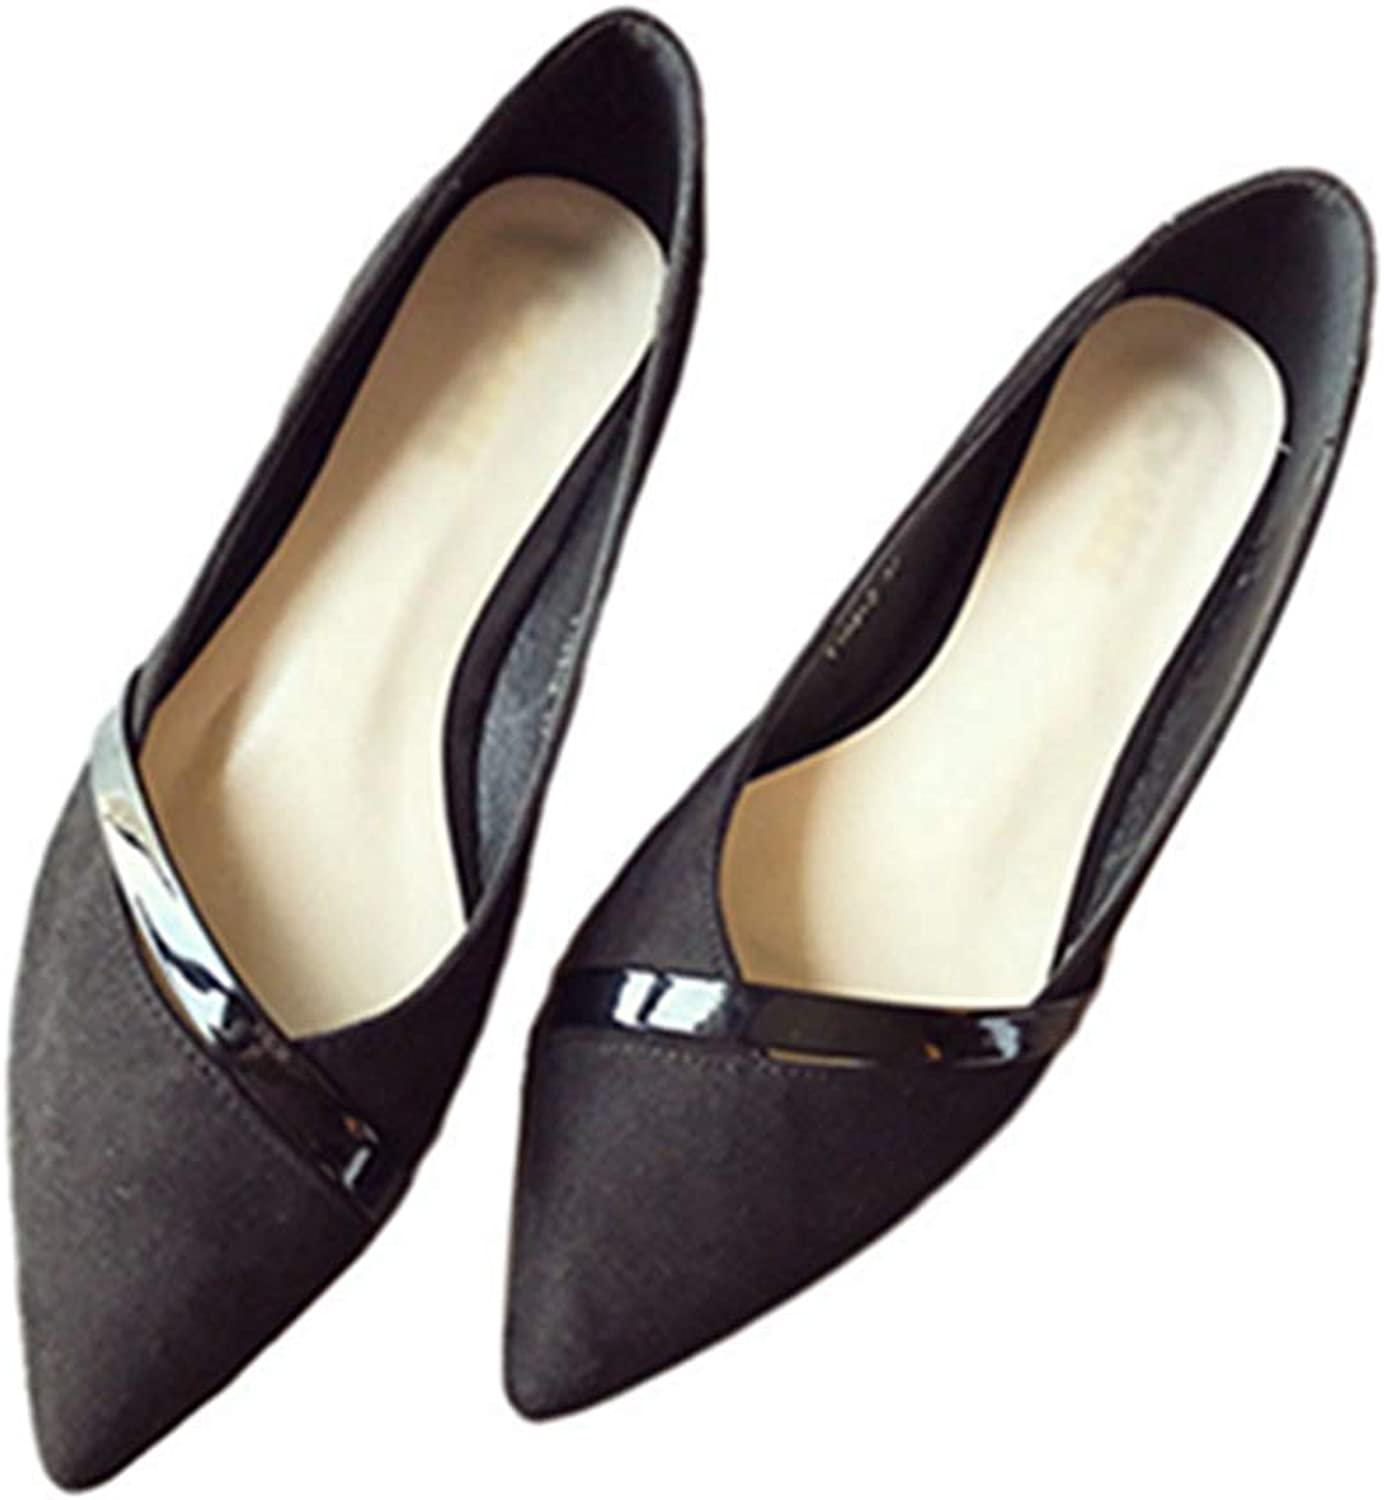 Kyle Walsh Pa Women 's Flats shoes Pointed Toe Slip-on Ladies Casual Office Working Moccasins